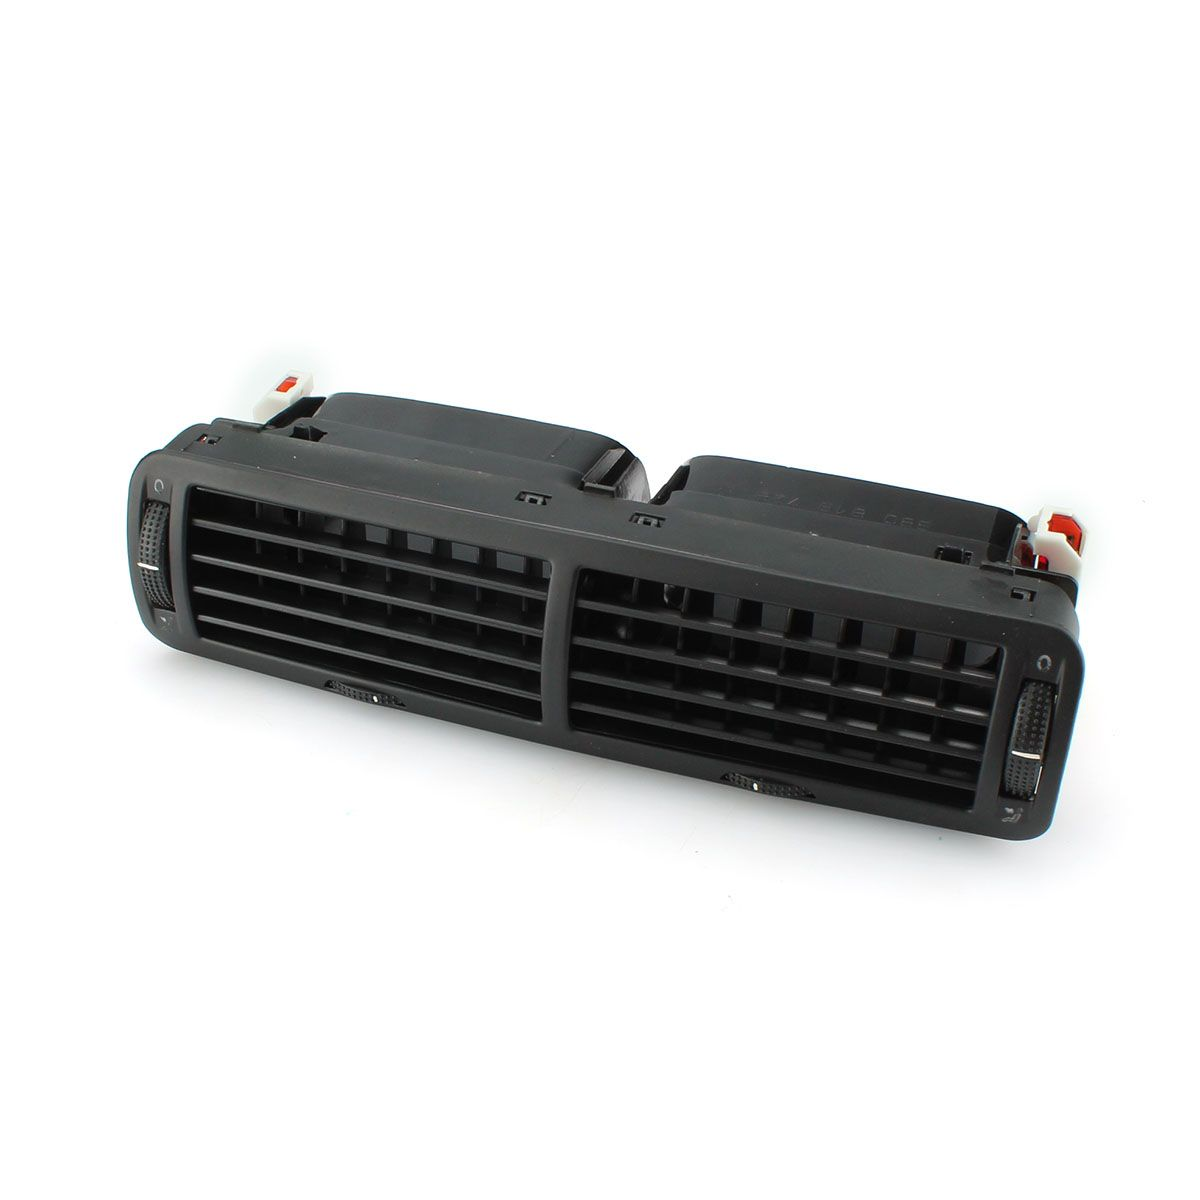 OEM Front Dashboard Central A/C Heater Air Vent Outlet Fit For VW Volkswagen Passat B5 1997-2005 3B0 819 728